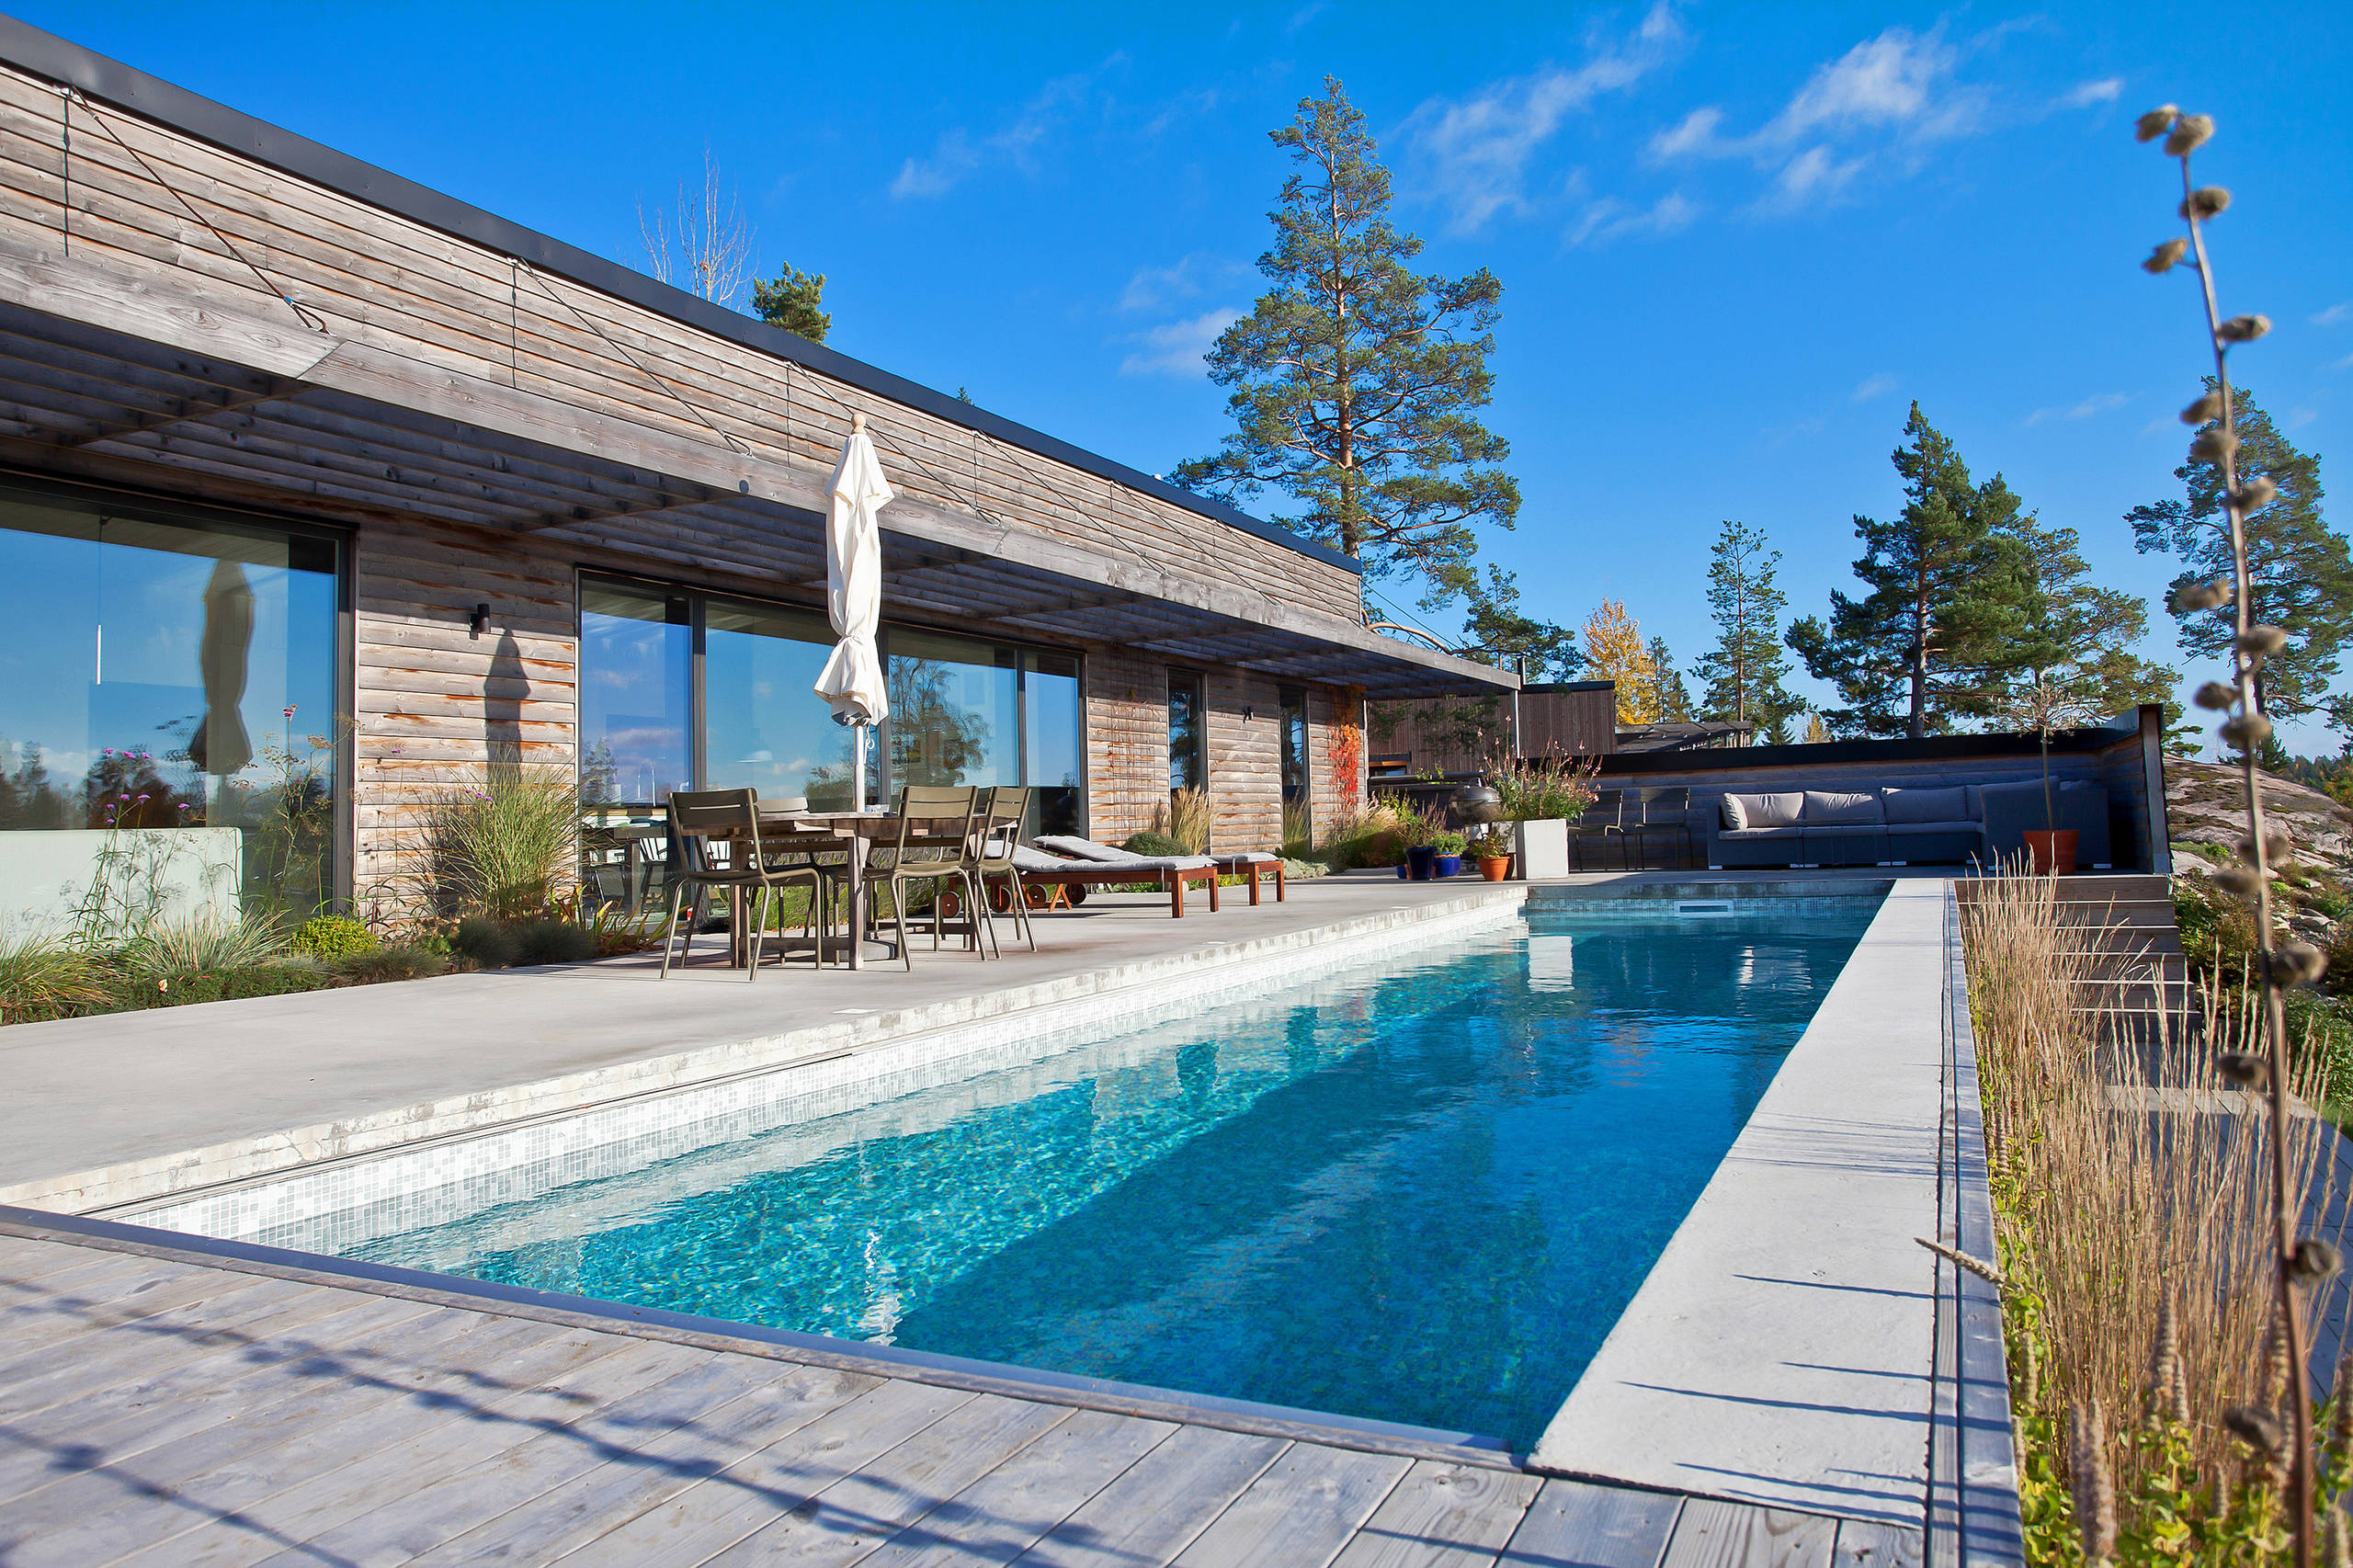 15 Stunning Scandinavian Pool Designs That Youll Want To Have In Your Backyard